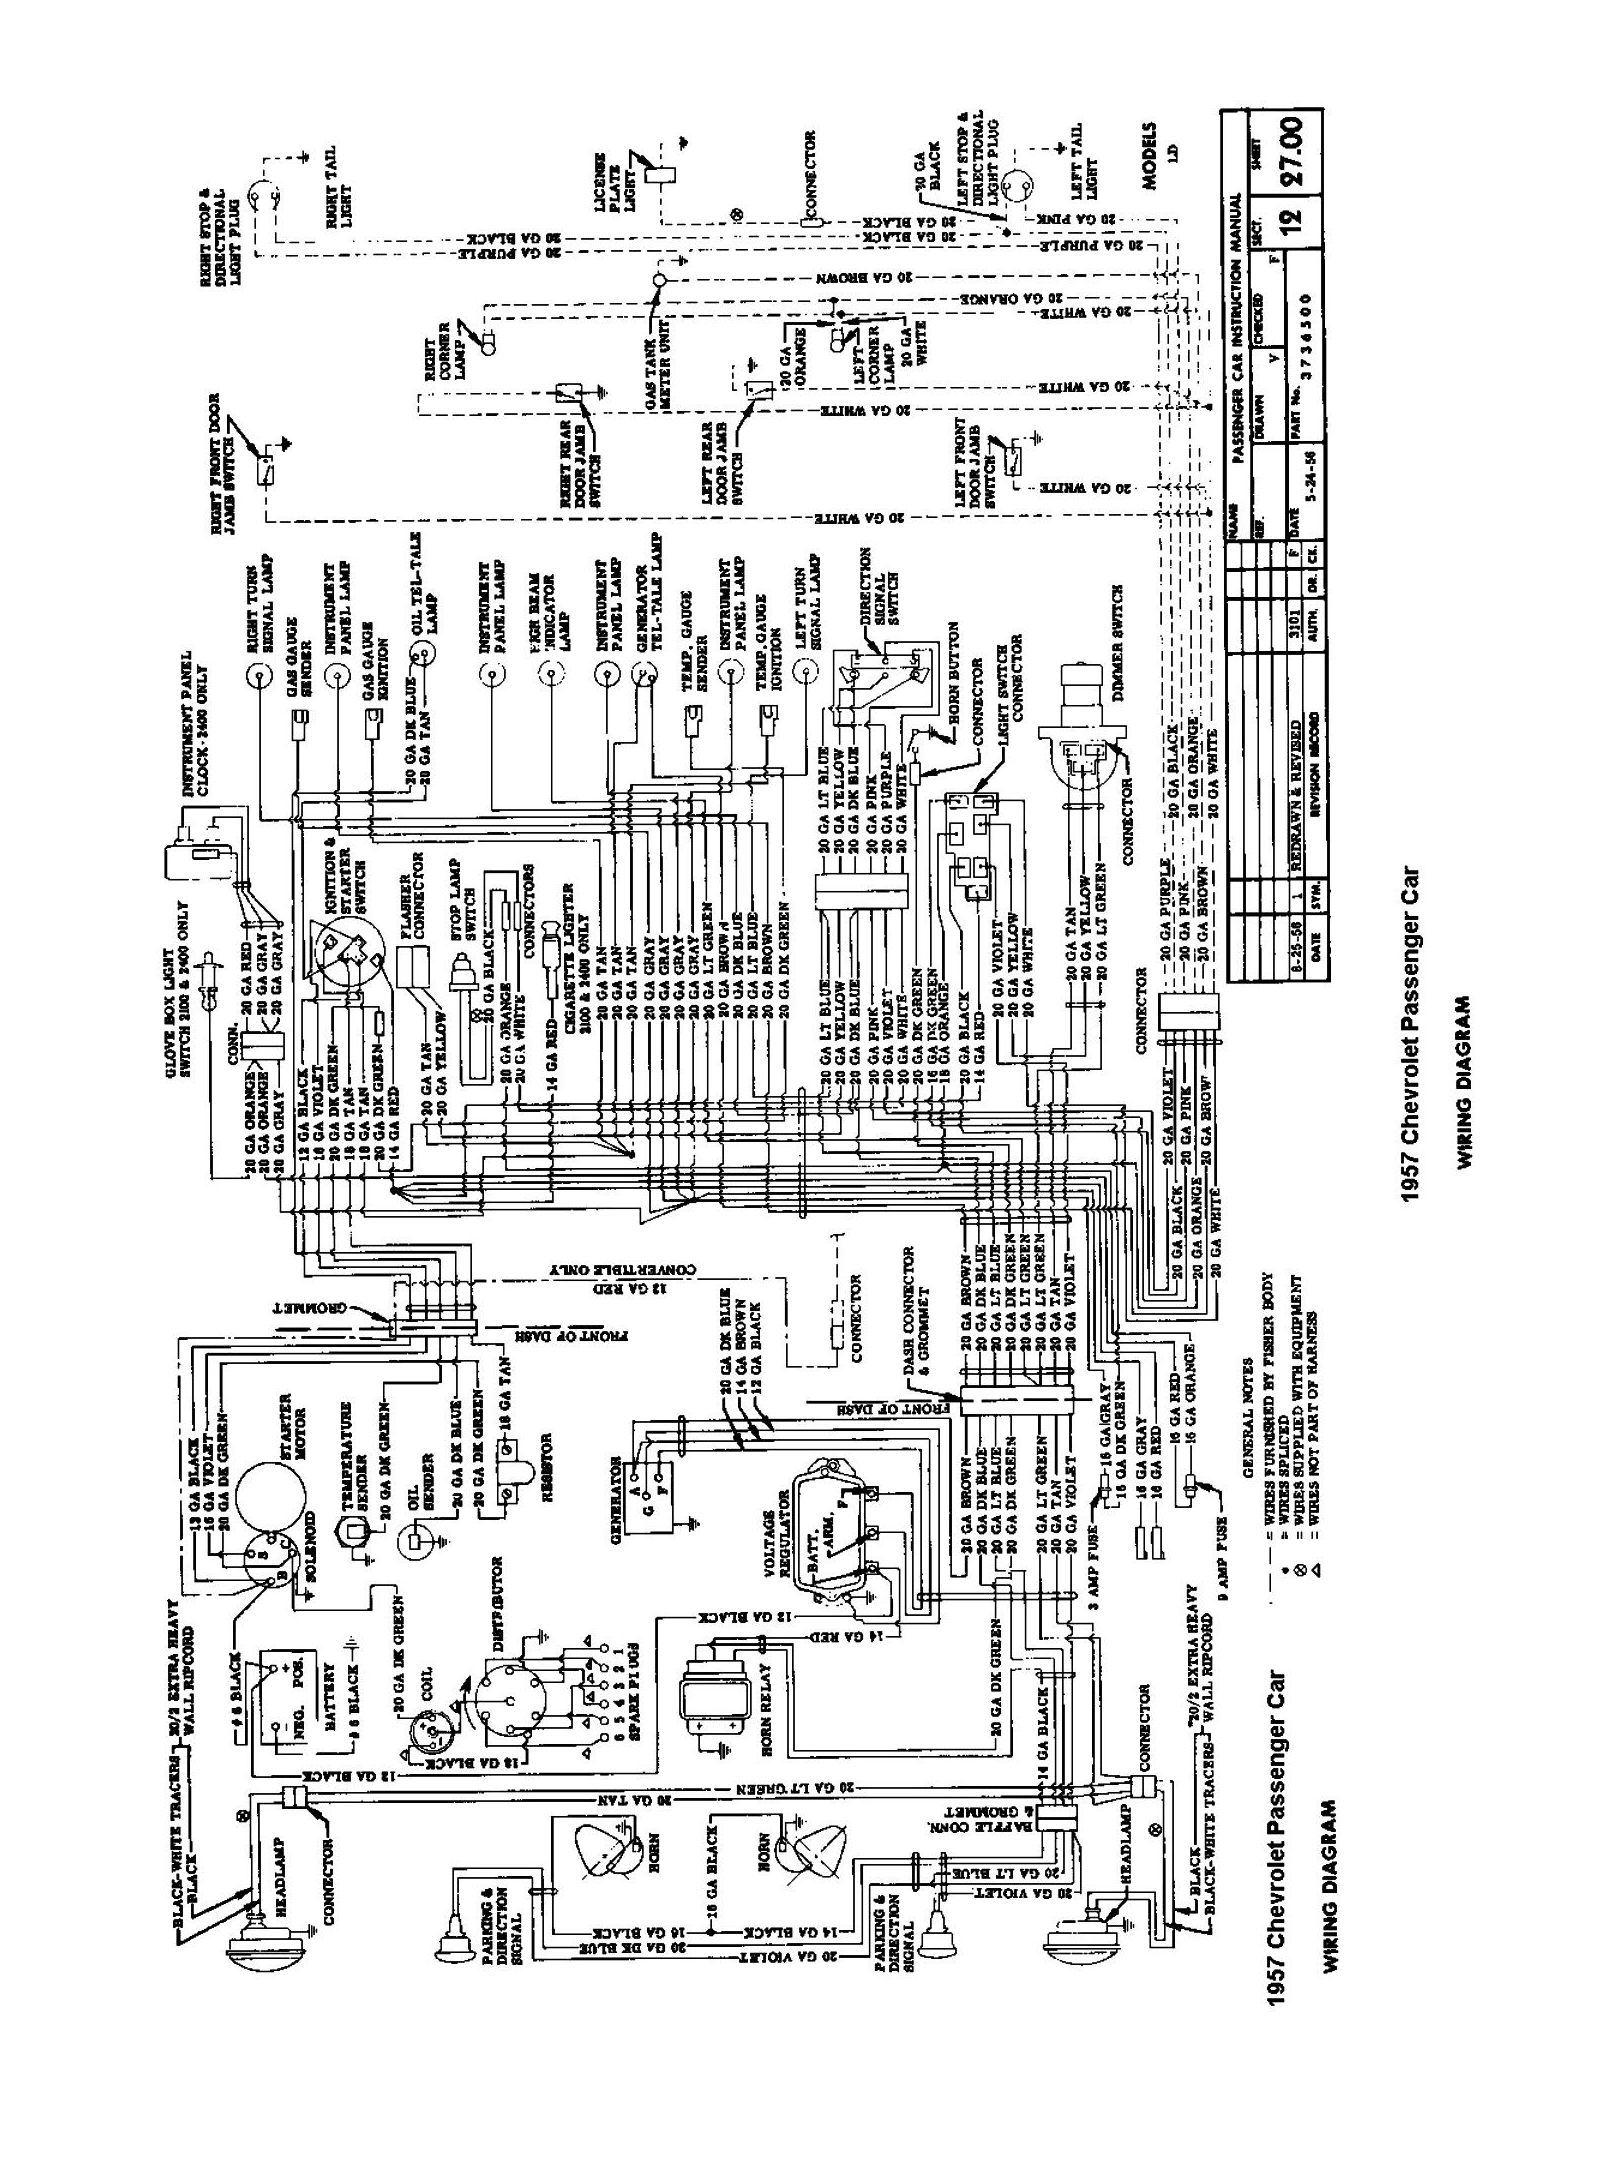 small resolution of wiring diagram for 1957 chevrolet bel air wiring diagram paper 57 chevy wiring diagram 57 chevys